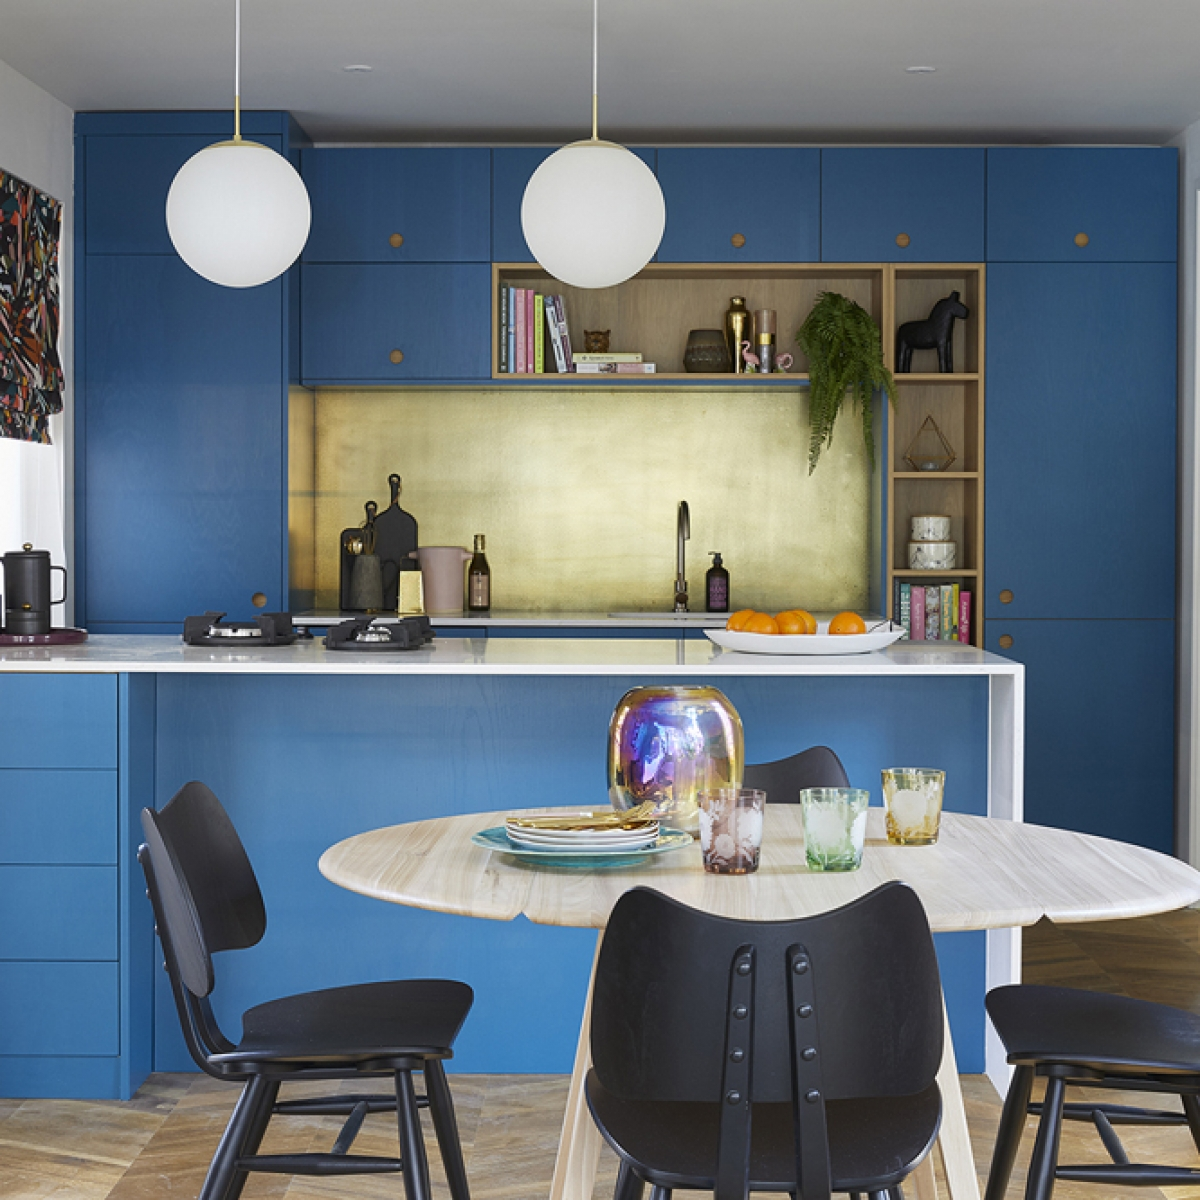 The Ideal Home Show Innovation home kitchen revealed! – Sophie Robinson